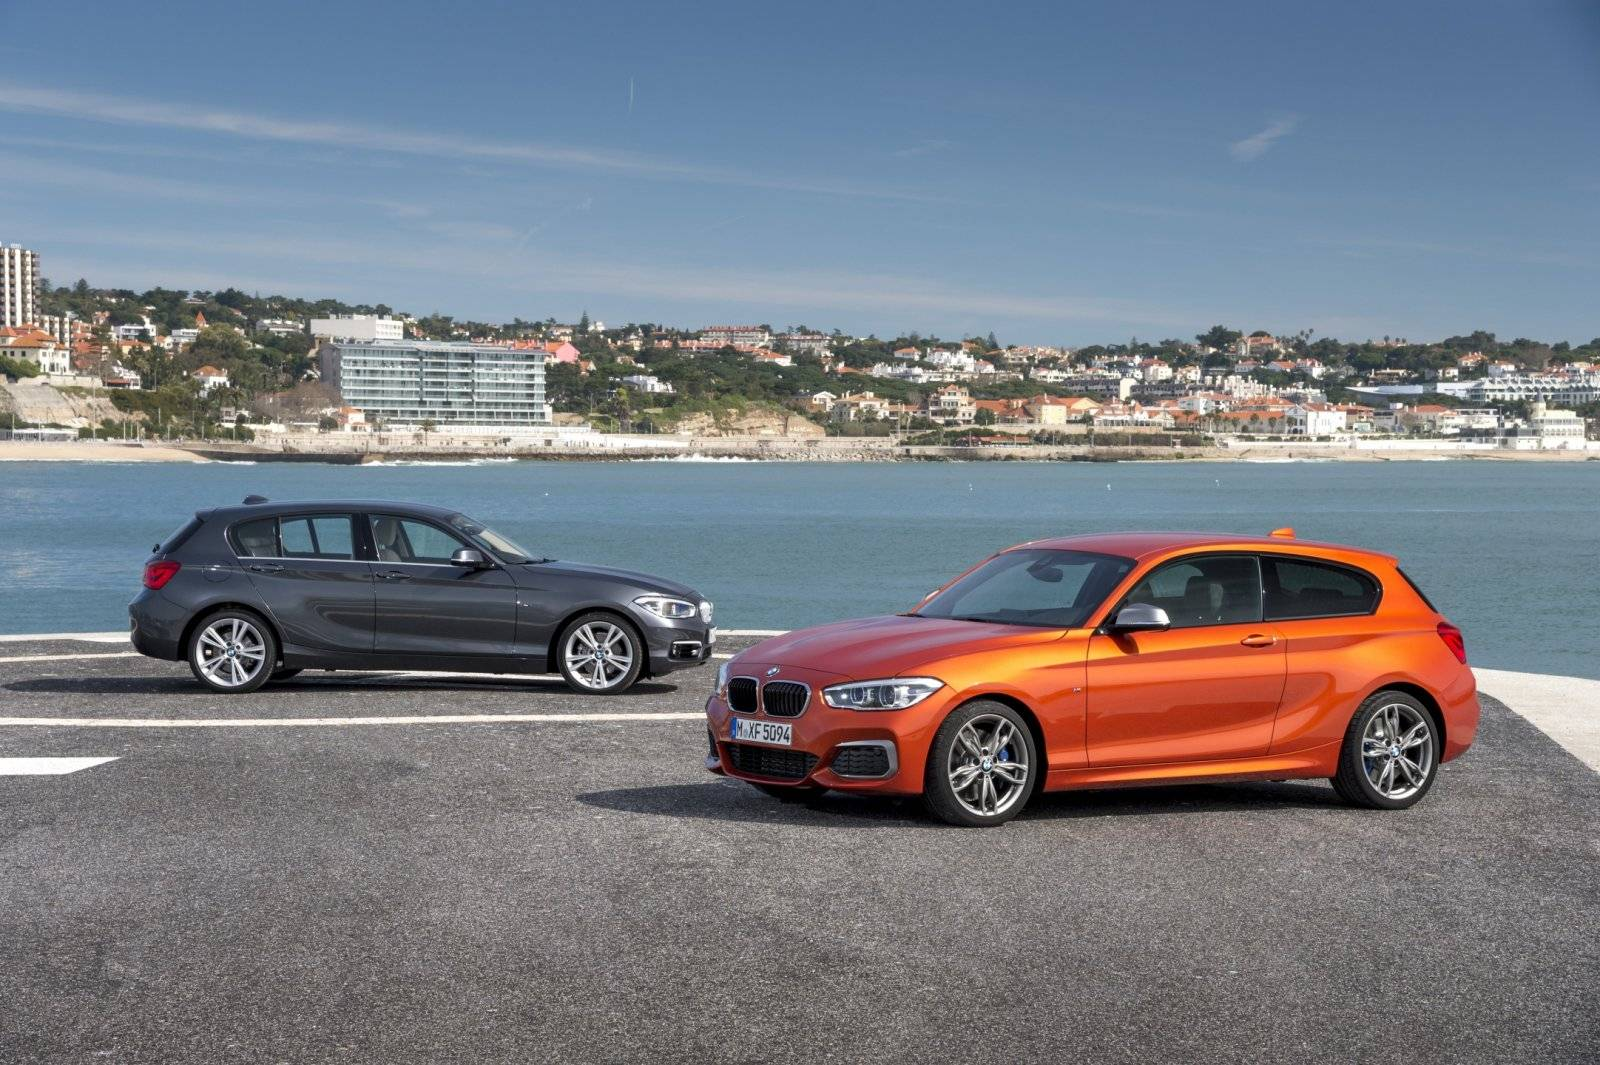 test autotest bmw 1 serie autotests. Black Bedroom Furniture Sets. Home Design Ideas